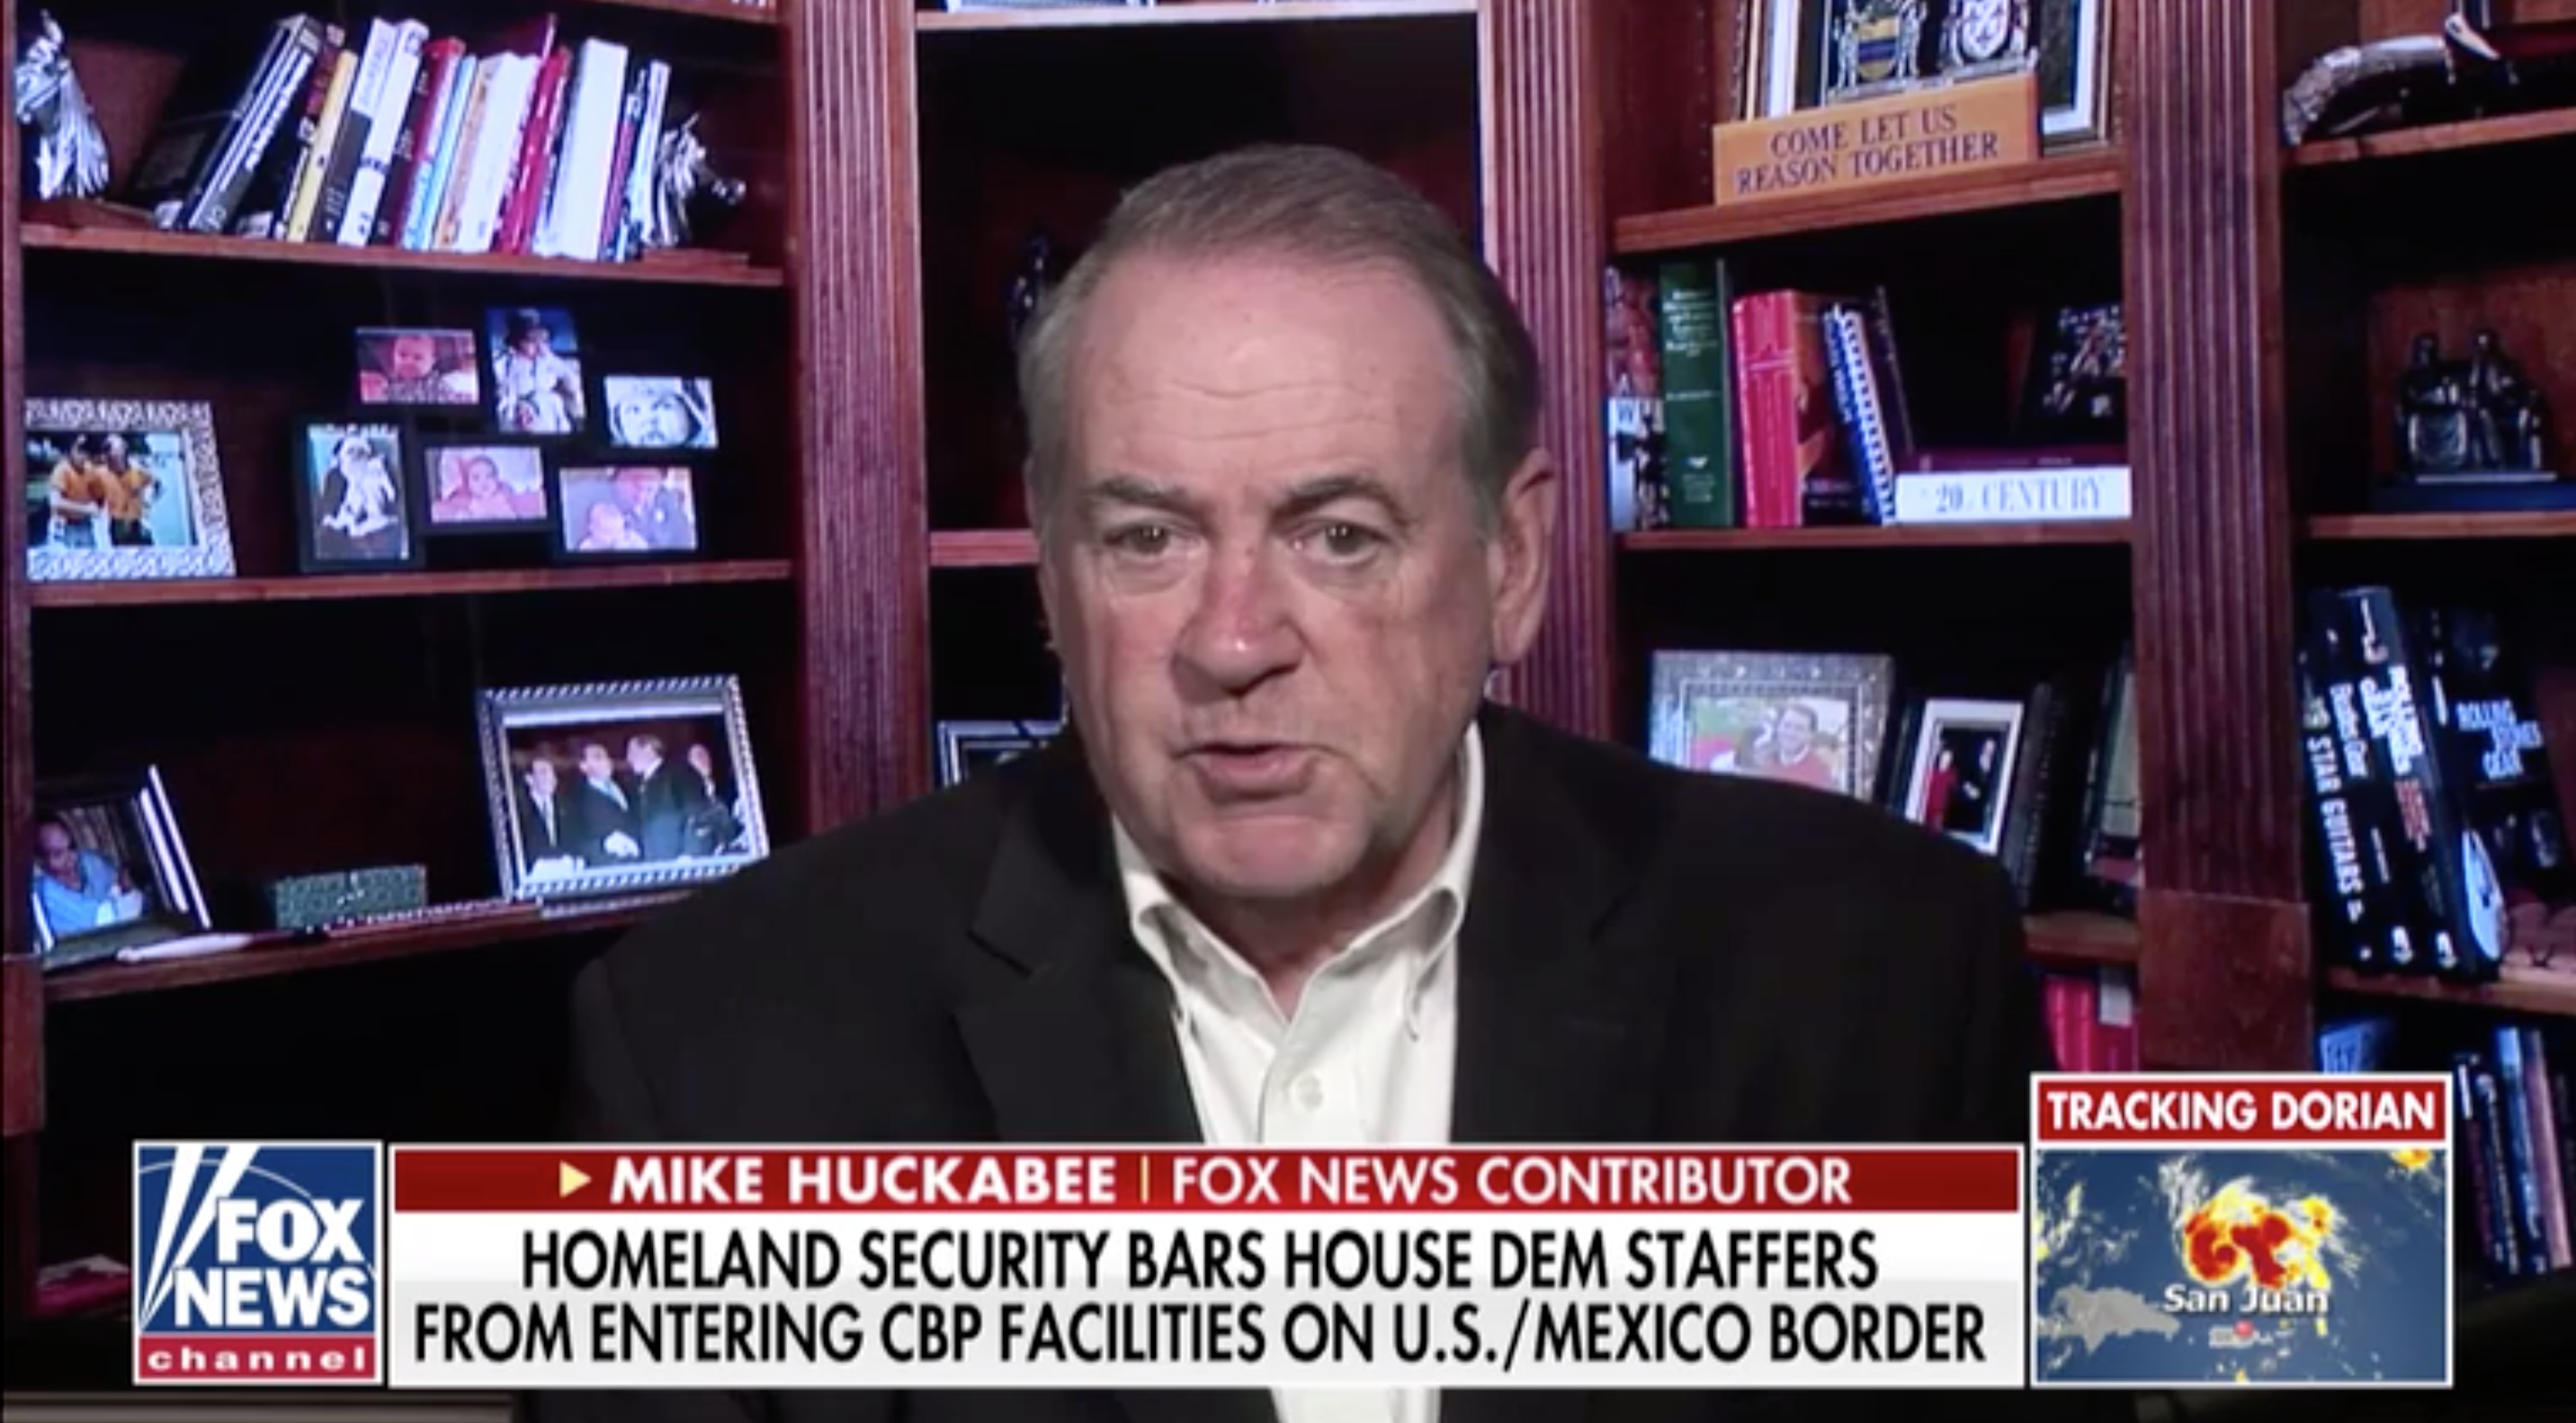 'It is all politics': Mike Huckabee defends DHS for barring Democratic staff from border facilities